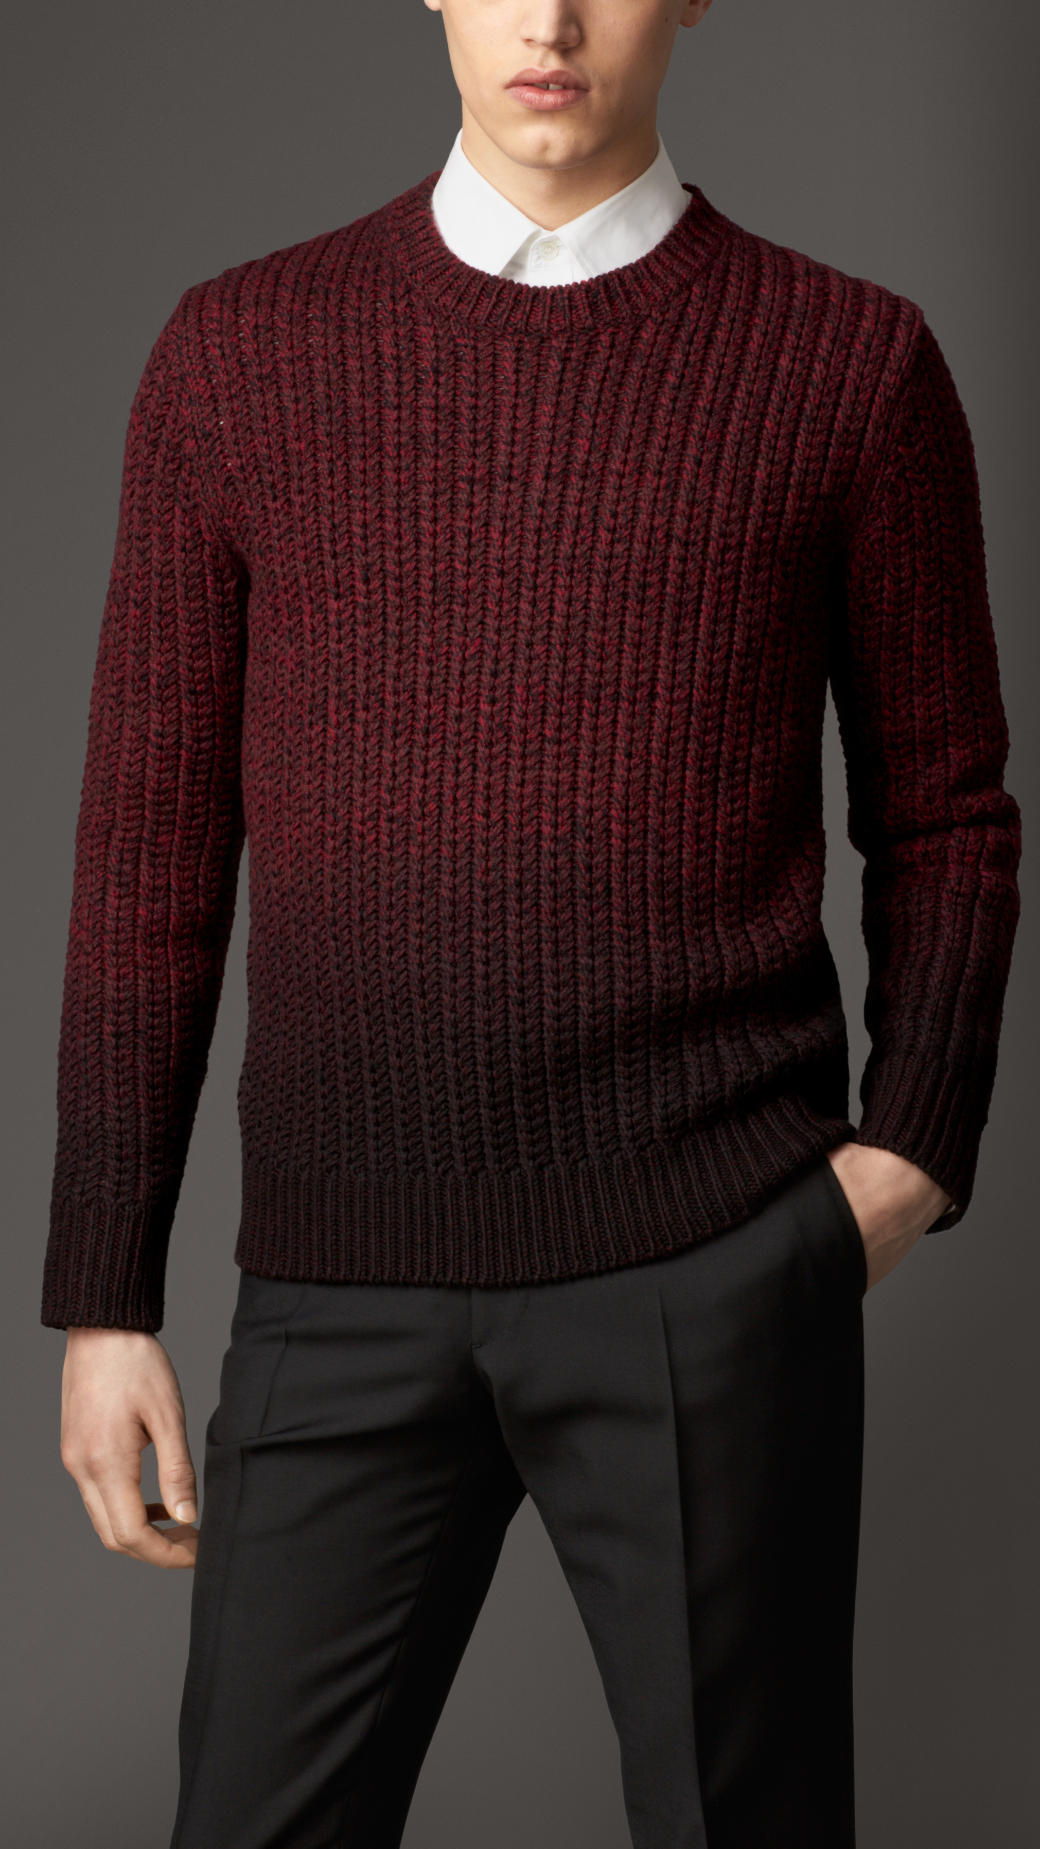 Lyst Burberry Merino Wool Dip Dye Sweater In Purple For Men